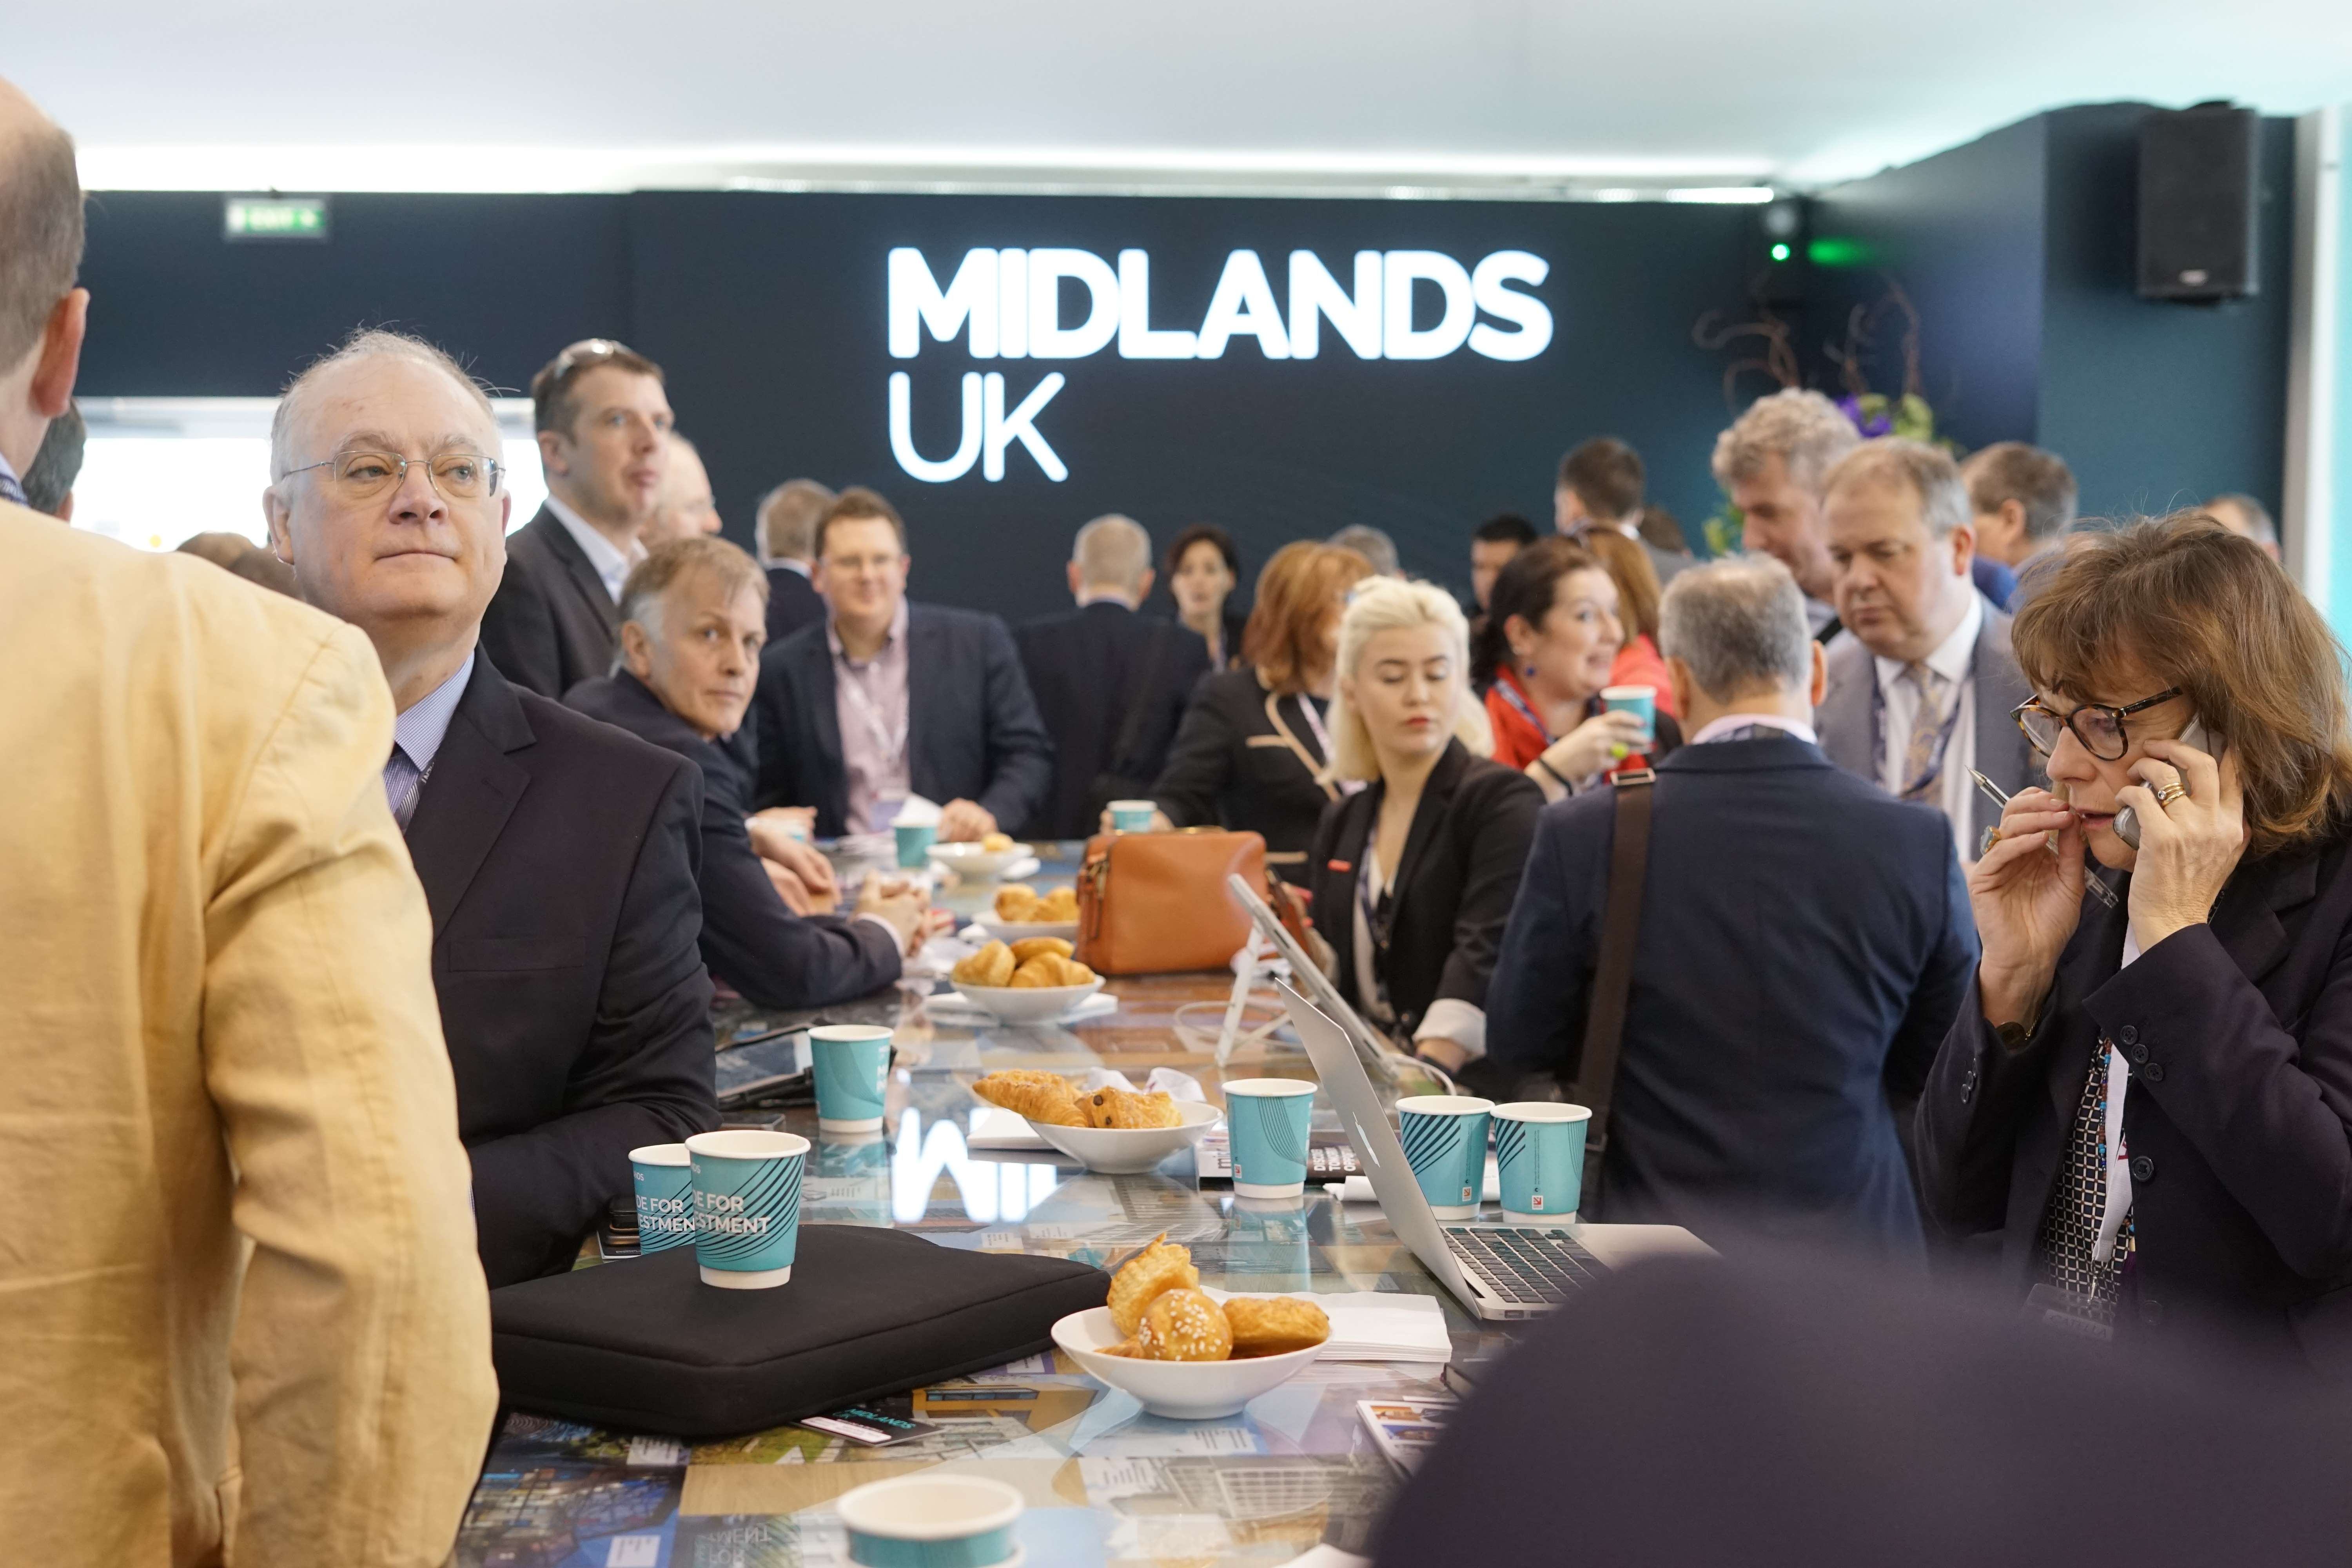 2019-02/1551358540_delegates-inside-the-midlands-uk-pavillion-at-mipim-2018